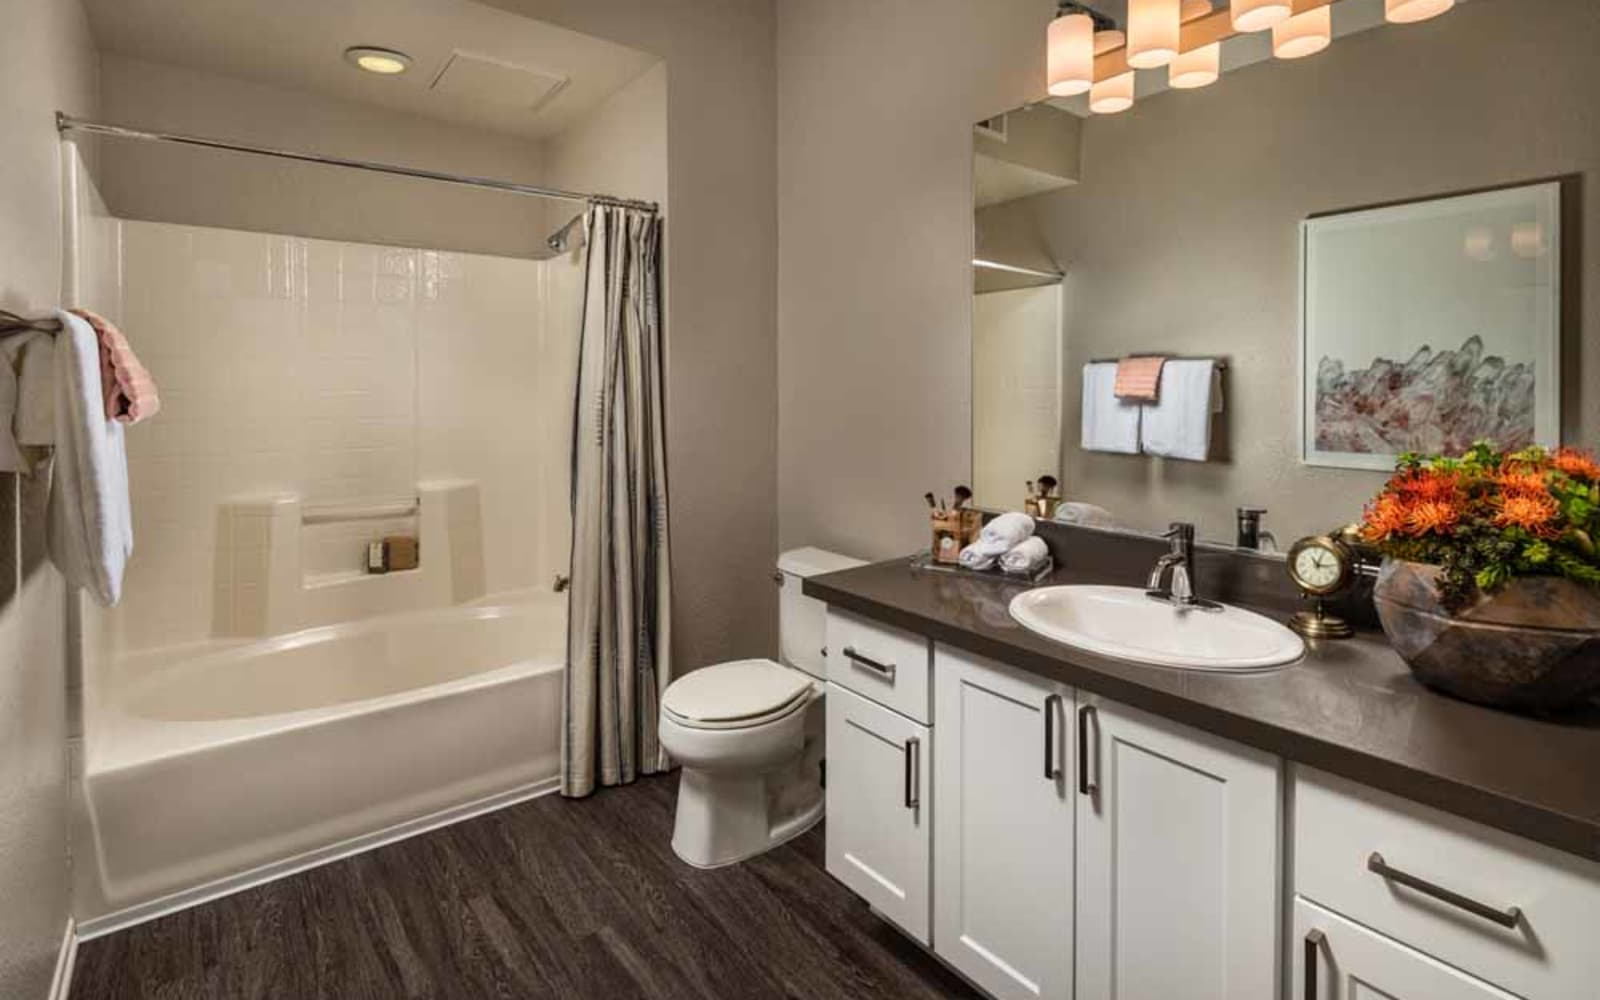 The master bathroom at Colonnade at Sycamore Highlands in Riverside, California